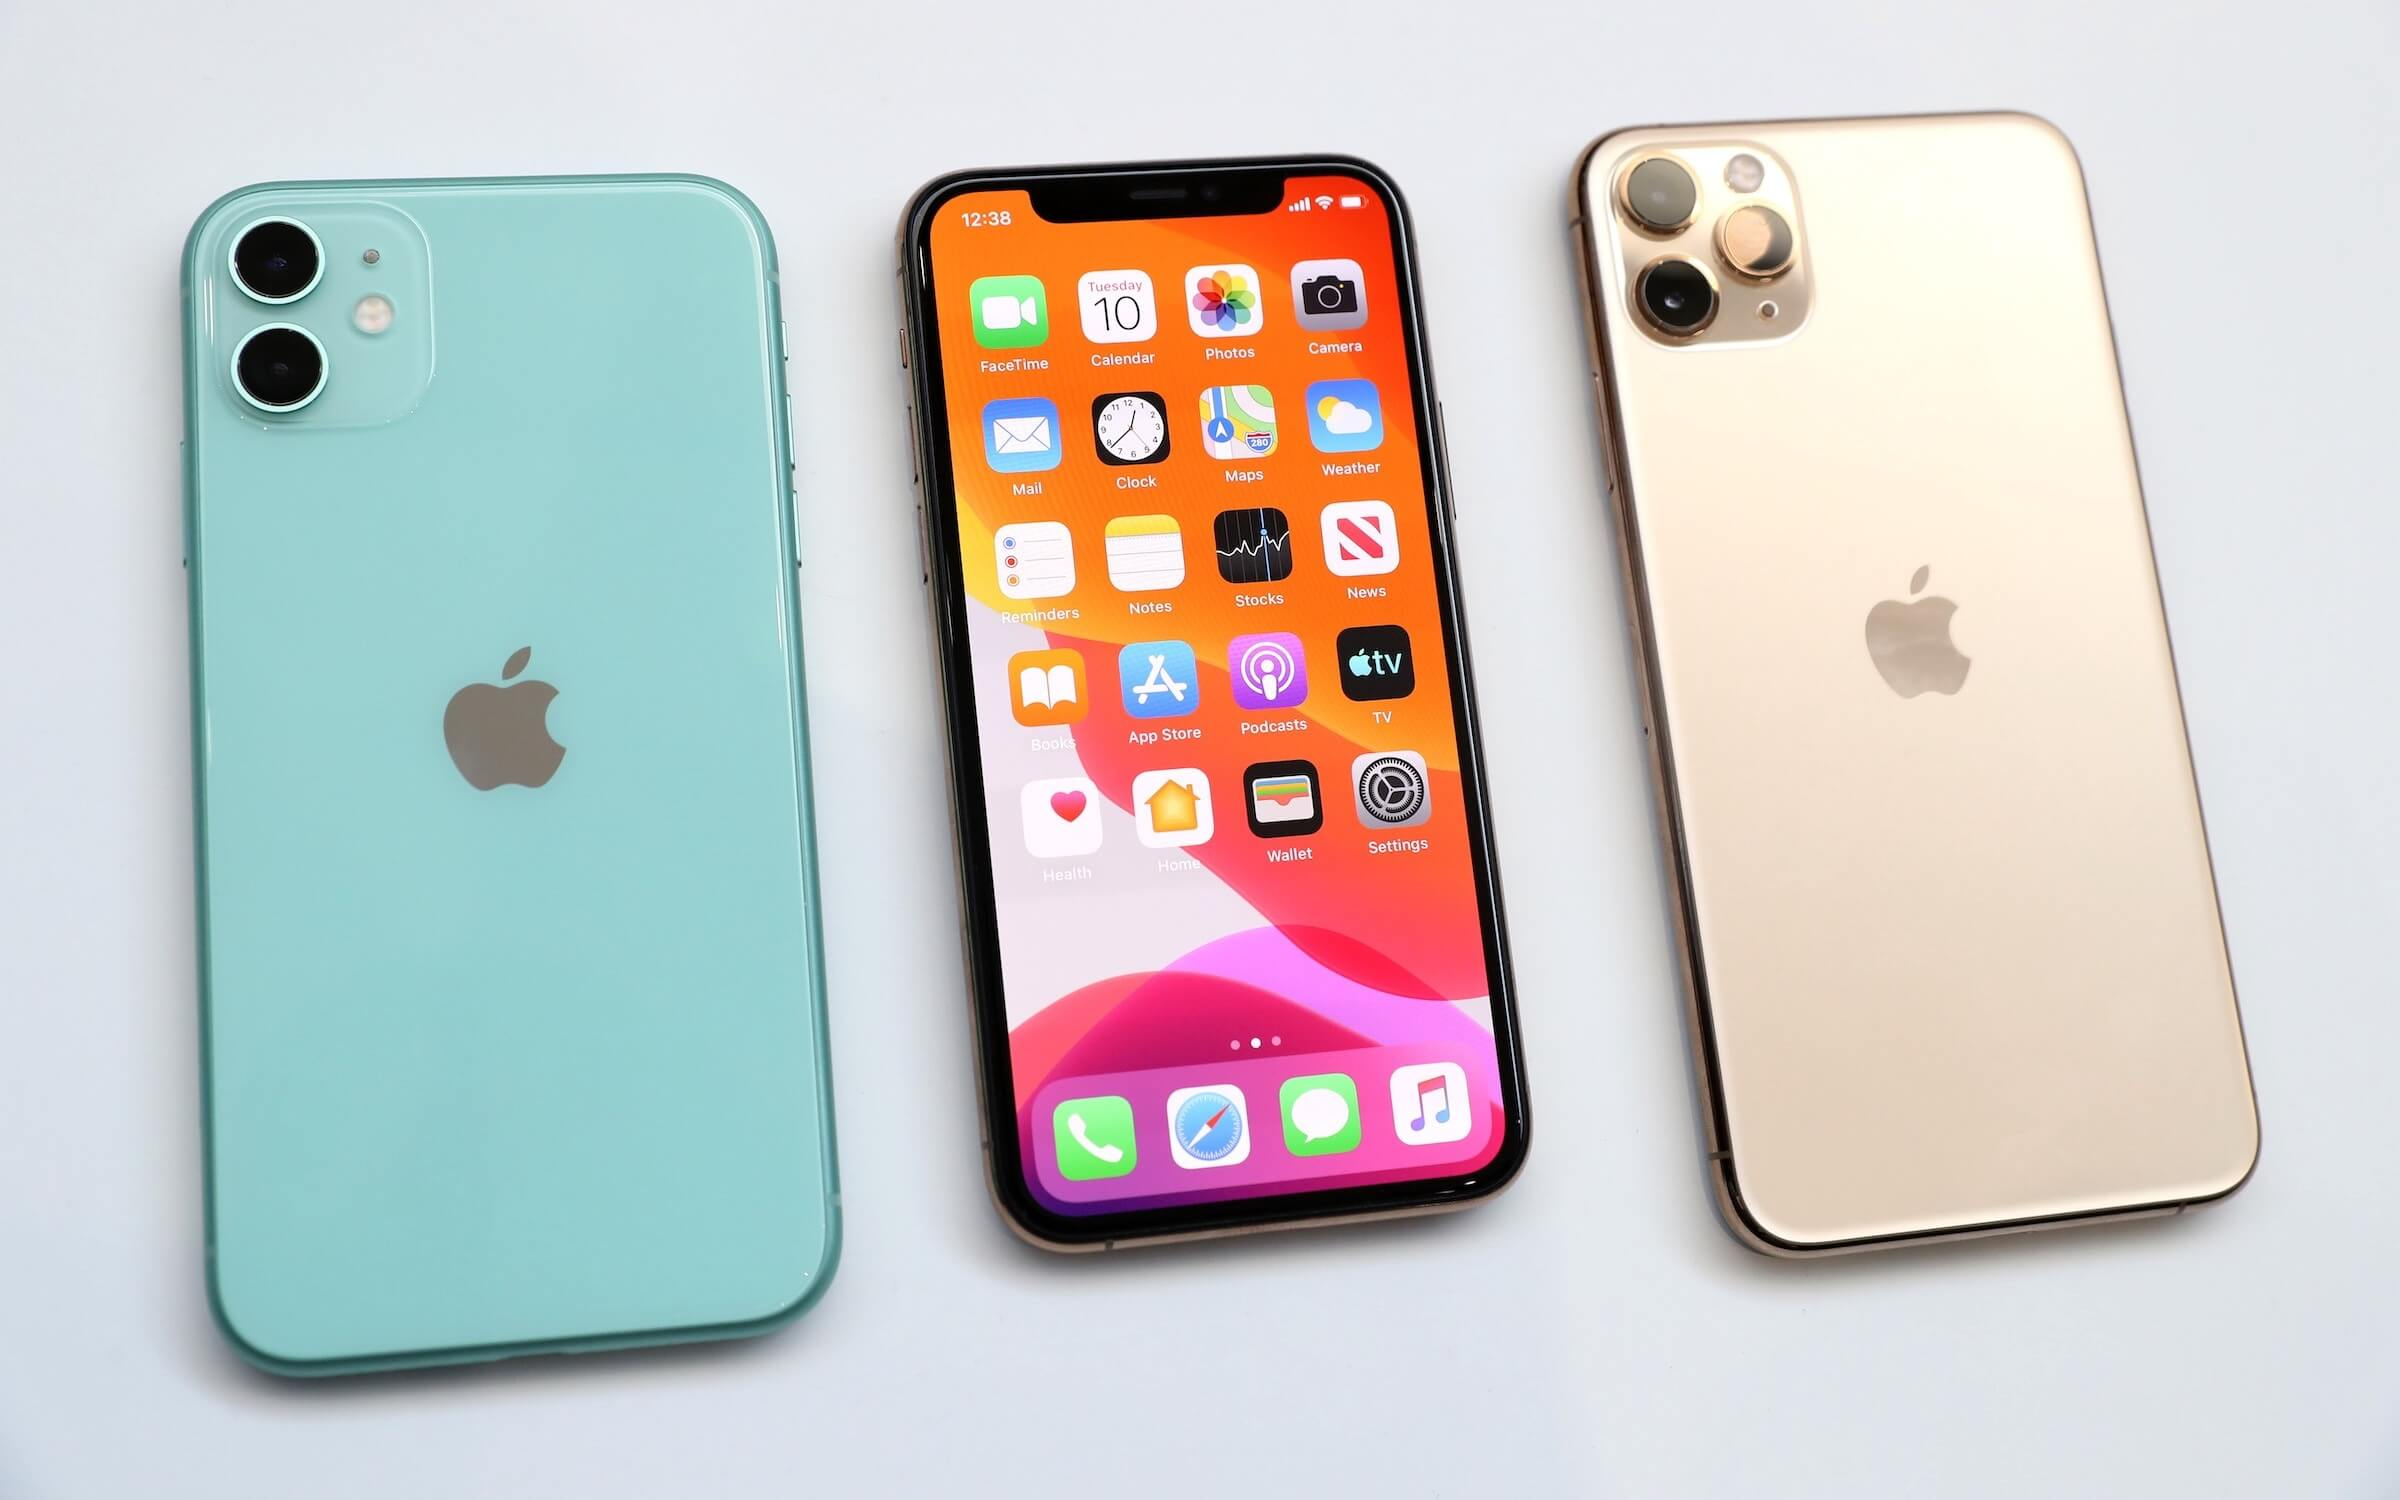 iPhone 11 and iPhone 11 Pro Max